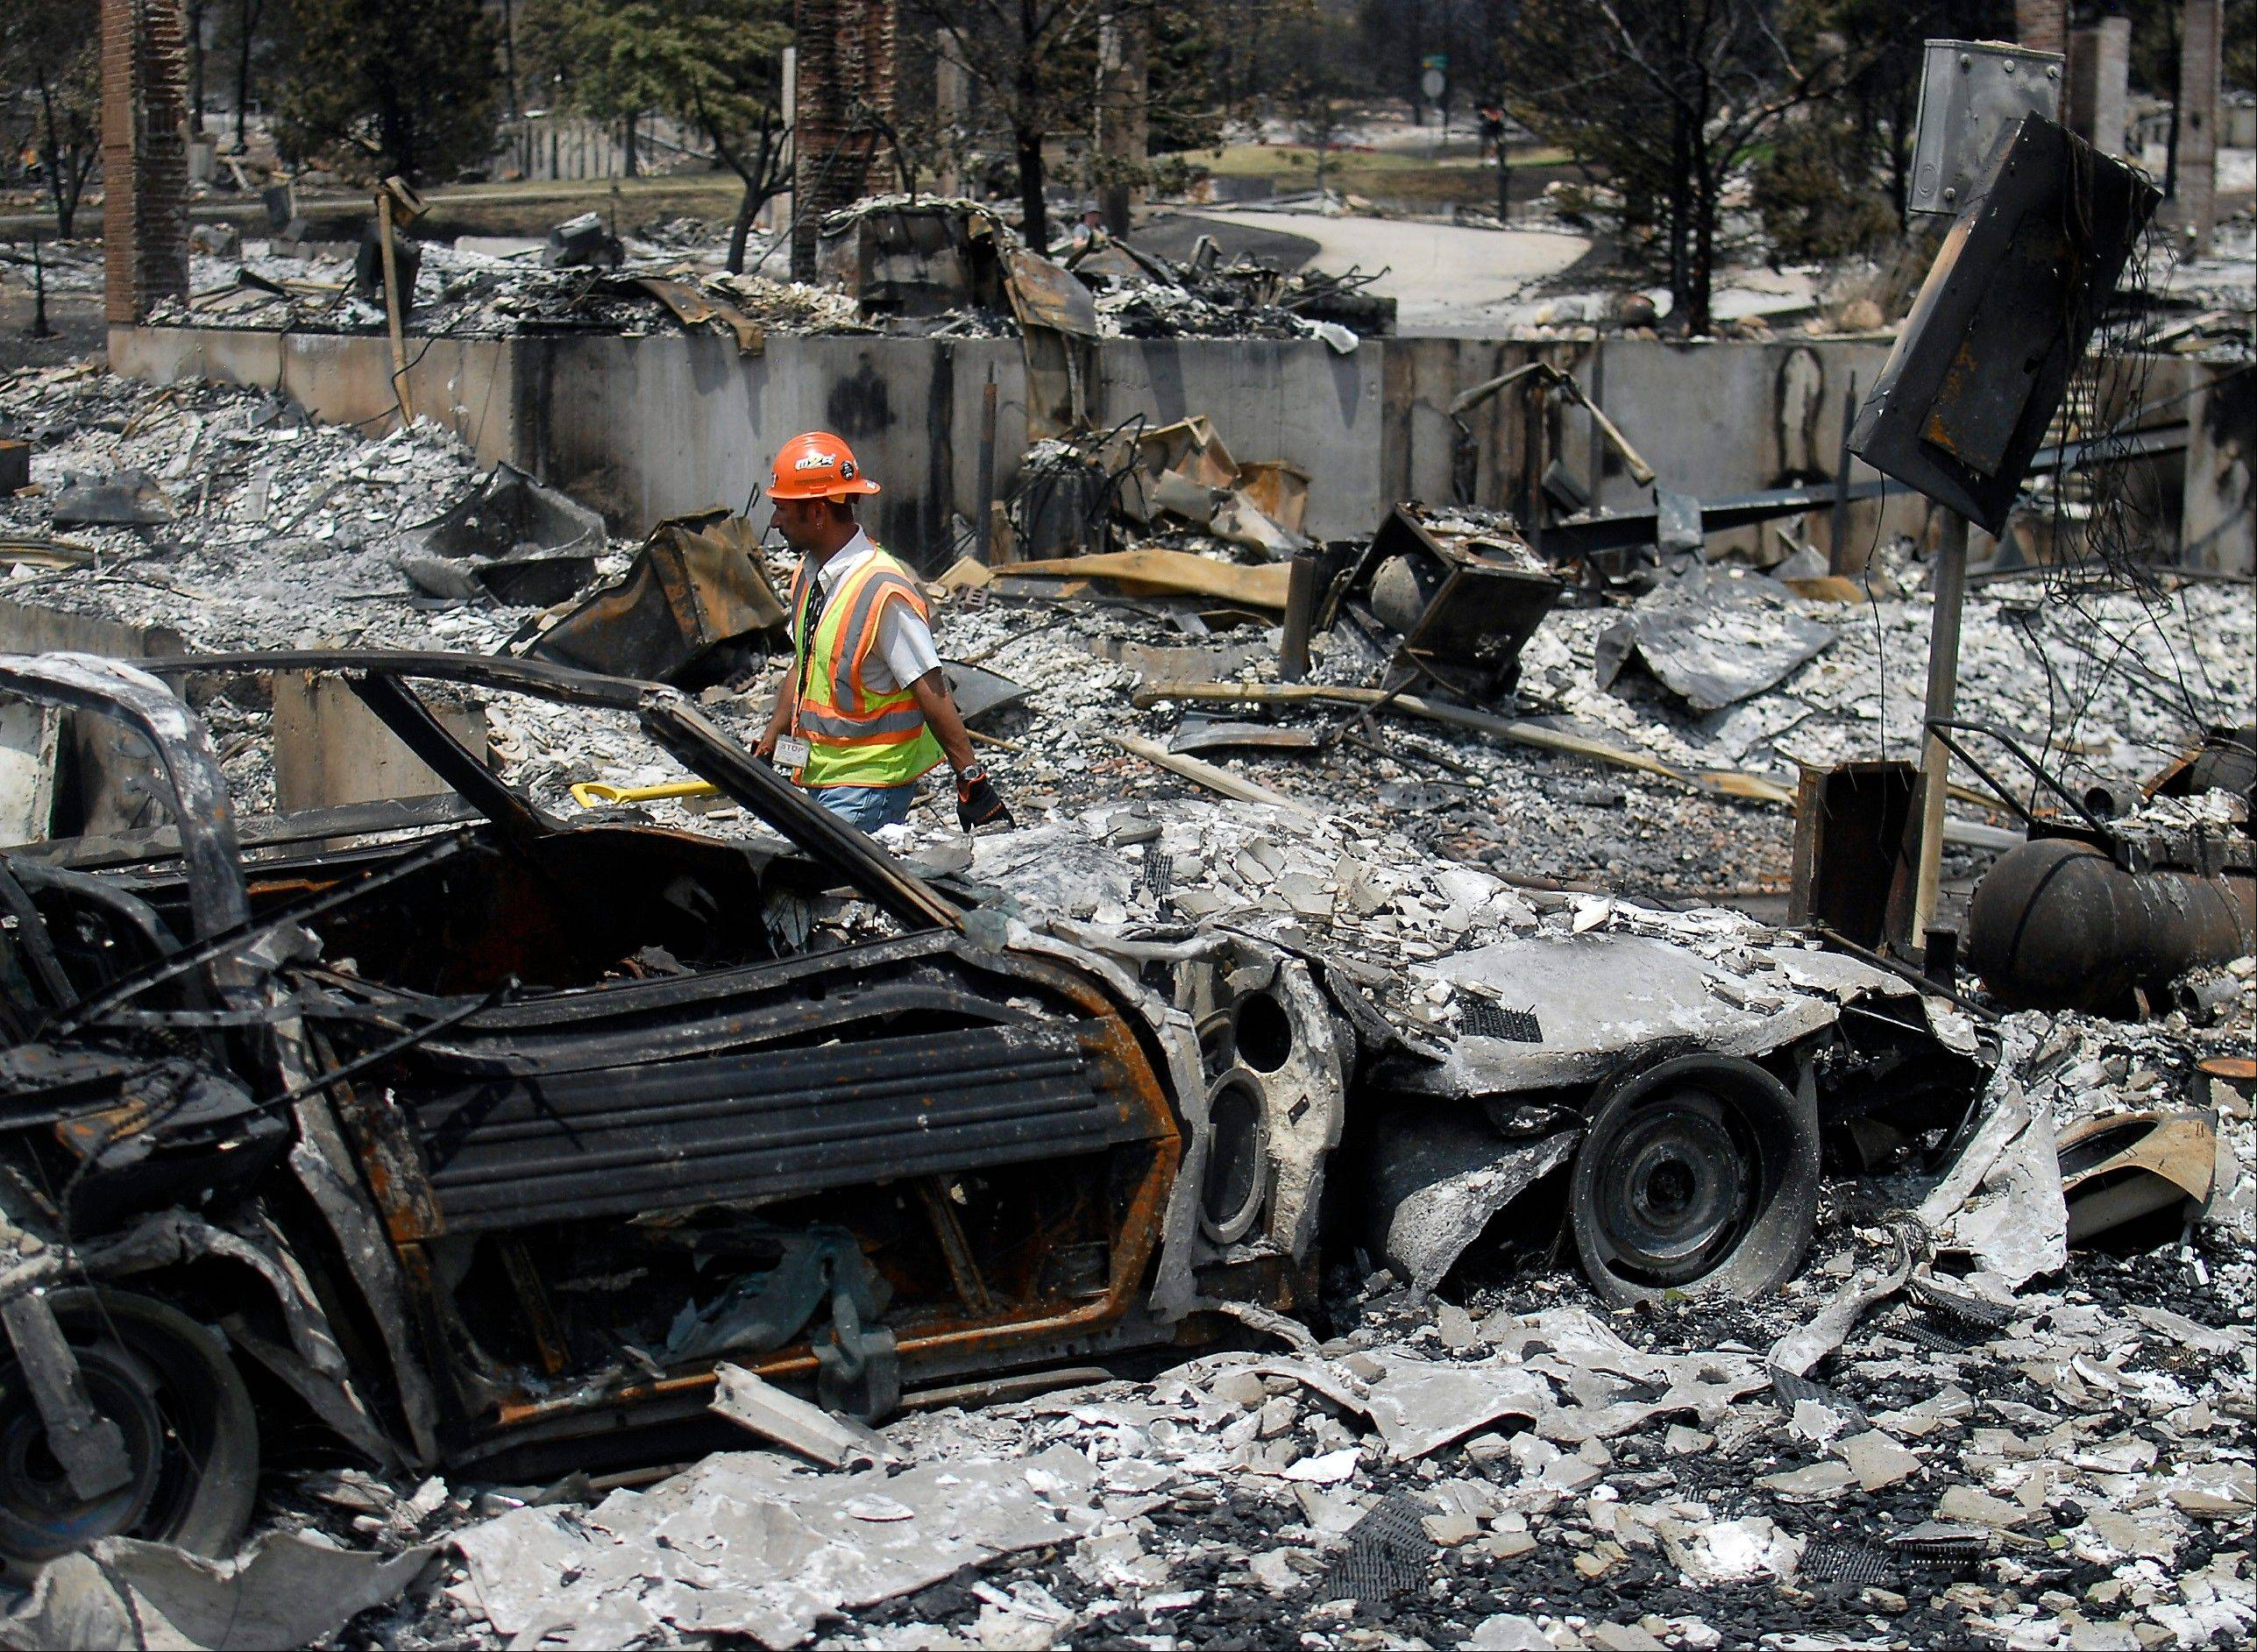 A utilities worker walks through homes destroyed by the Waldo Canyon Fire in the Mountain Shadows neighborhood of Colorado Springs, Colo., Monday. The blaze, now 45 percent contained, has damaged or destroyed nearly 350 homes.